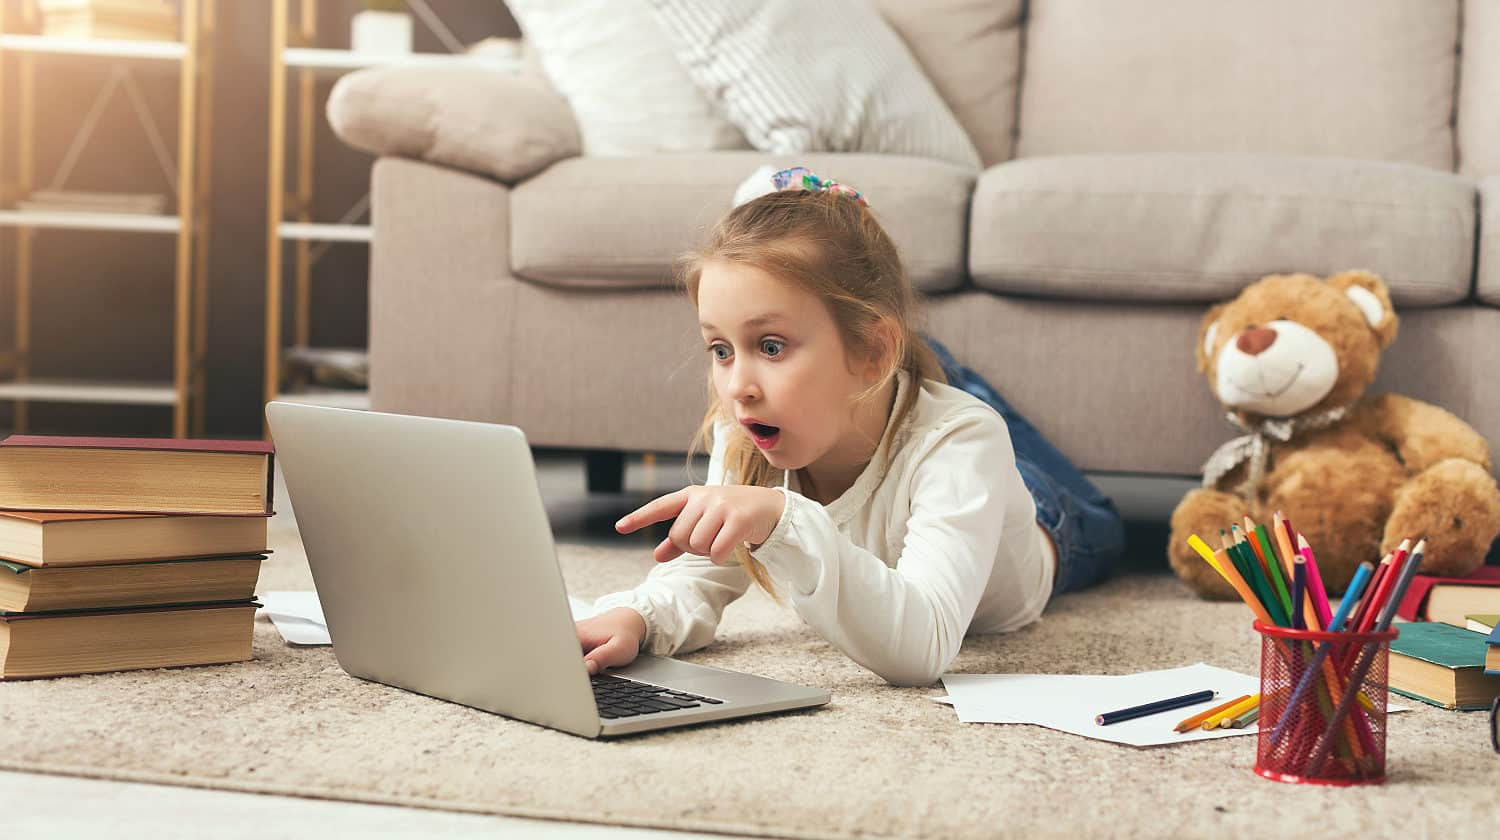 Featured | Shocked little casual girl watching movie | Netflix Viewing History | How To Monitor Viewing Activity Right Now